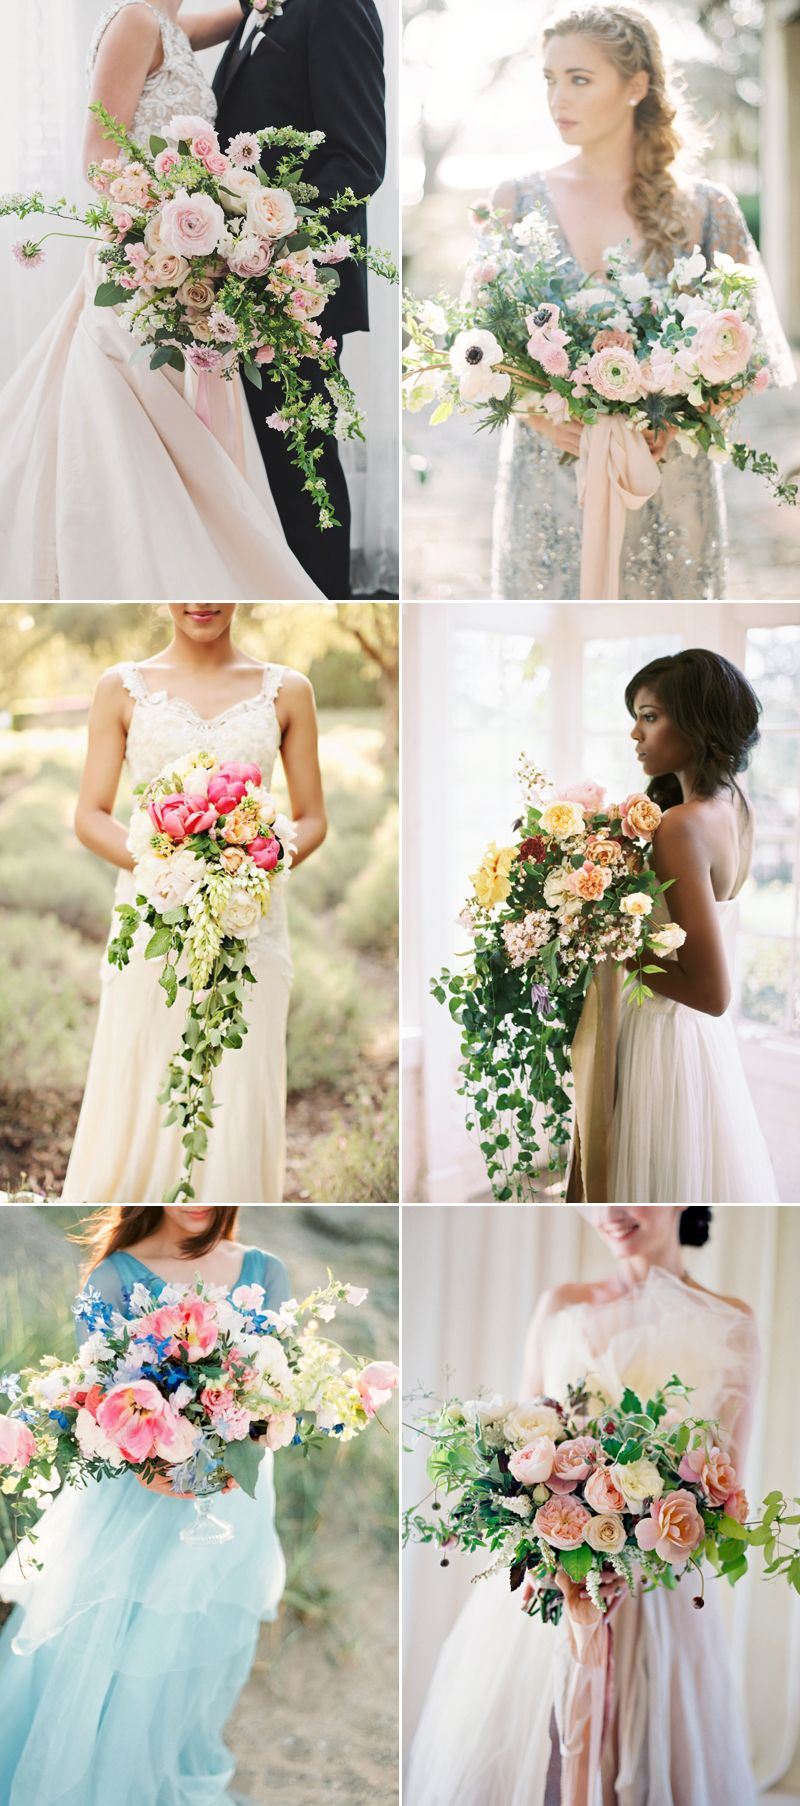 24 Utterly Fine Art Style Bridal Bouquets